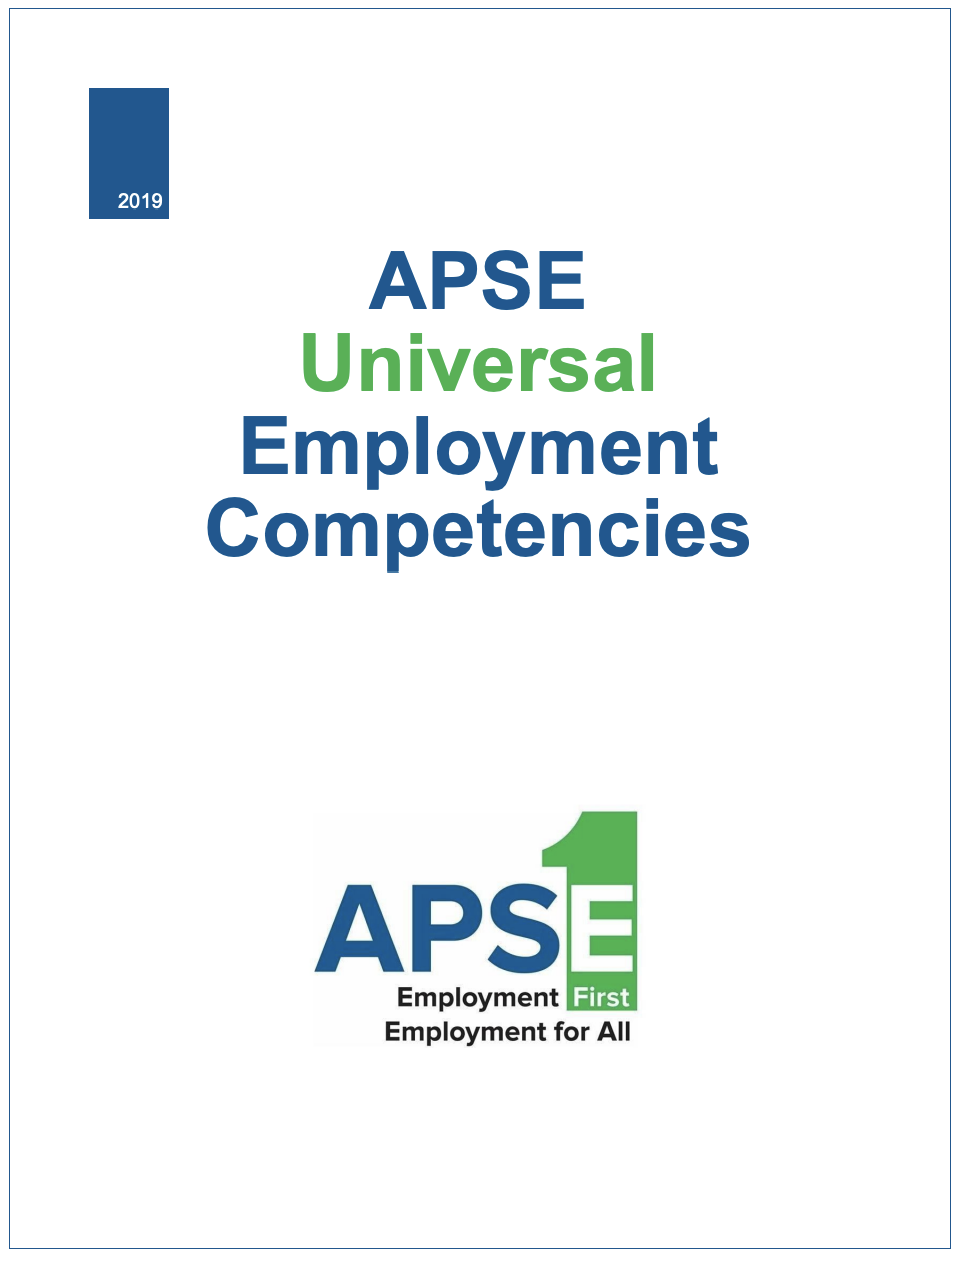 Front page of the APSE Universal Employment Competencies.